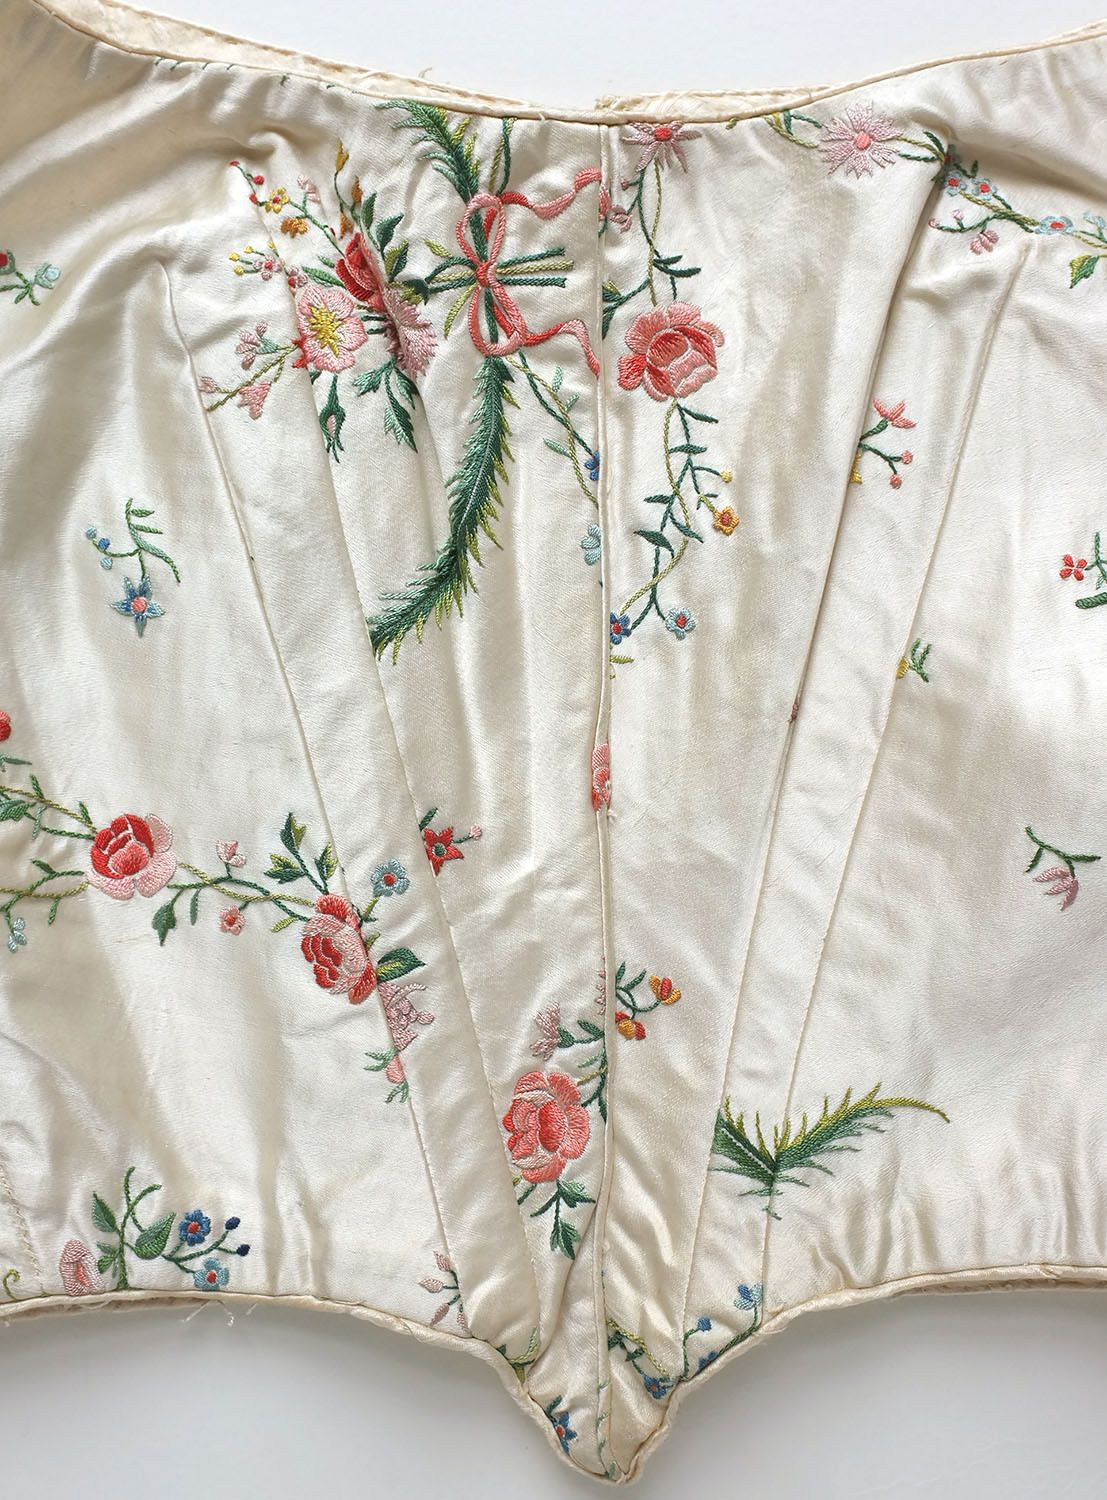 This is a beautiful mid 19th century dress bodice. Completely hand stitched with hand embroidered flowers on cream silk satin. Pleated detail to sleeves.  As fresh and colourful as the day it was made, this must have been carefully stored away for many years. Lined with cotton cambric. Fastens at the back with hooks and loops. Detail